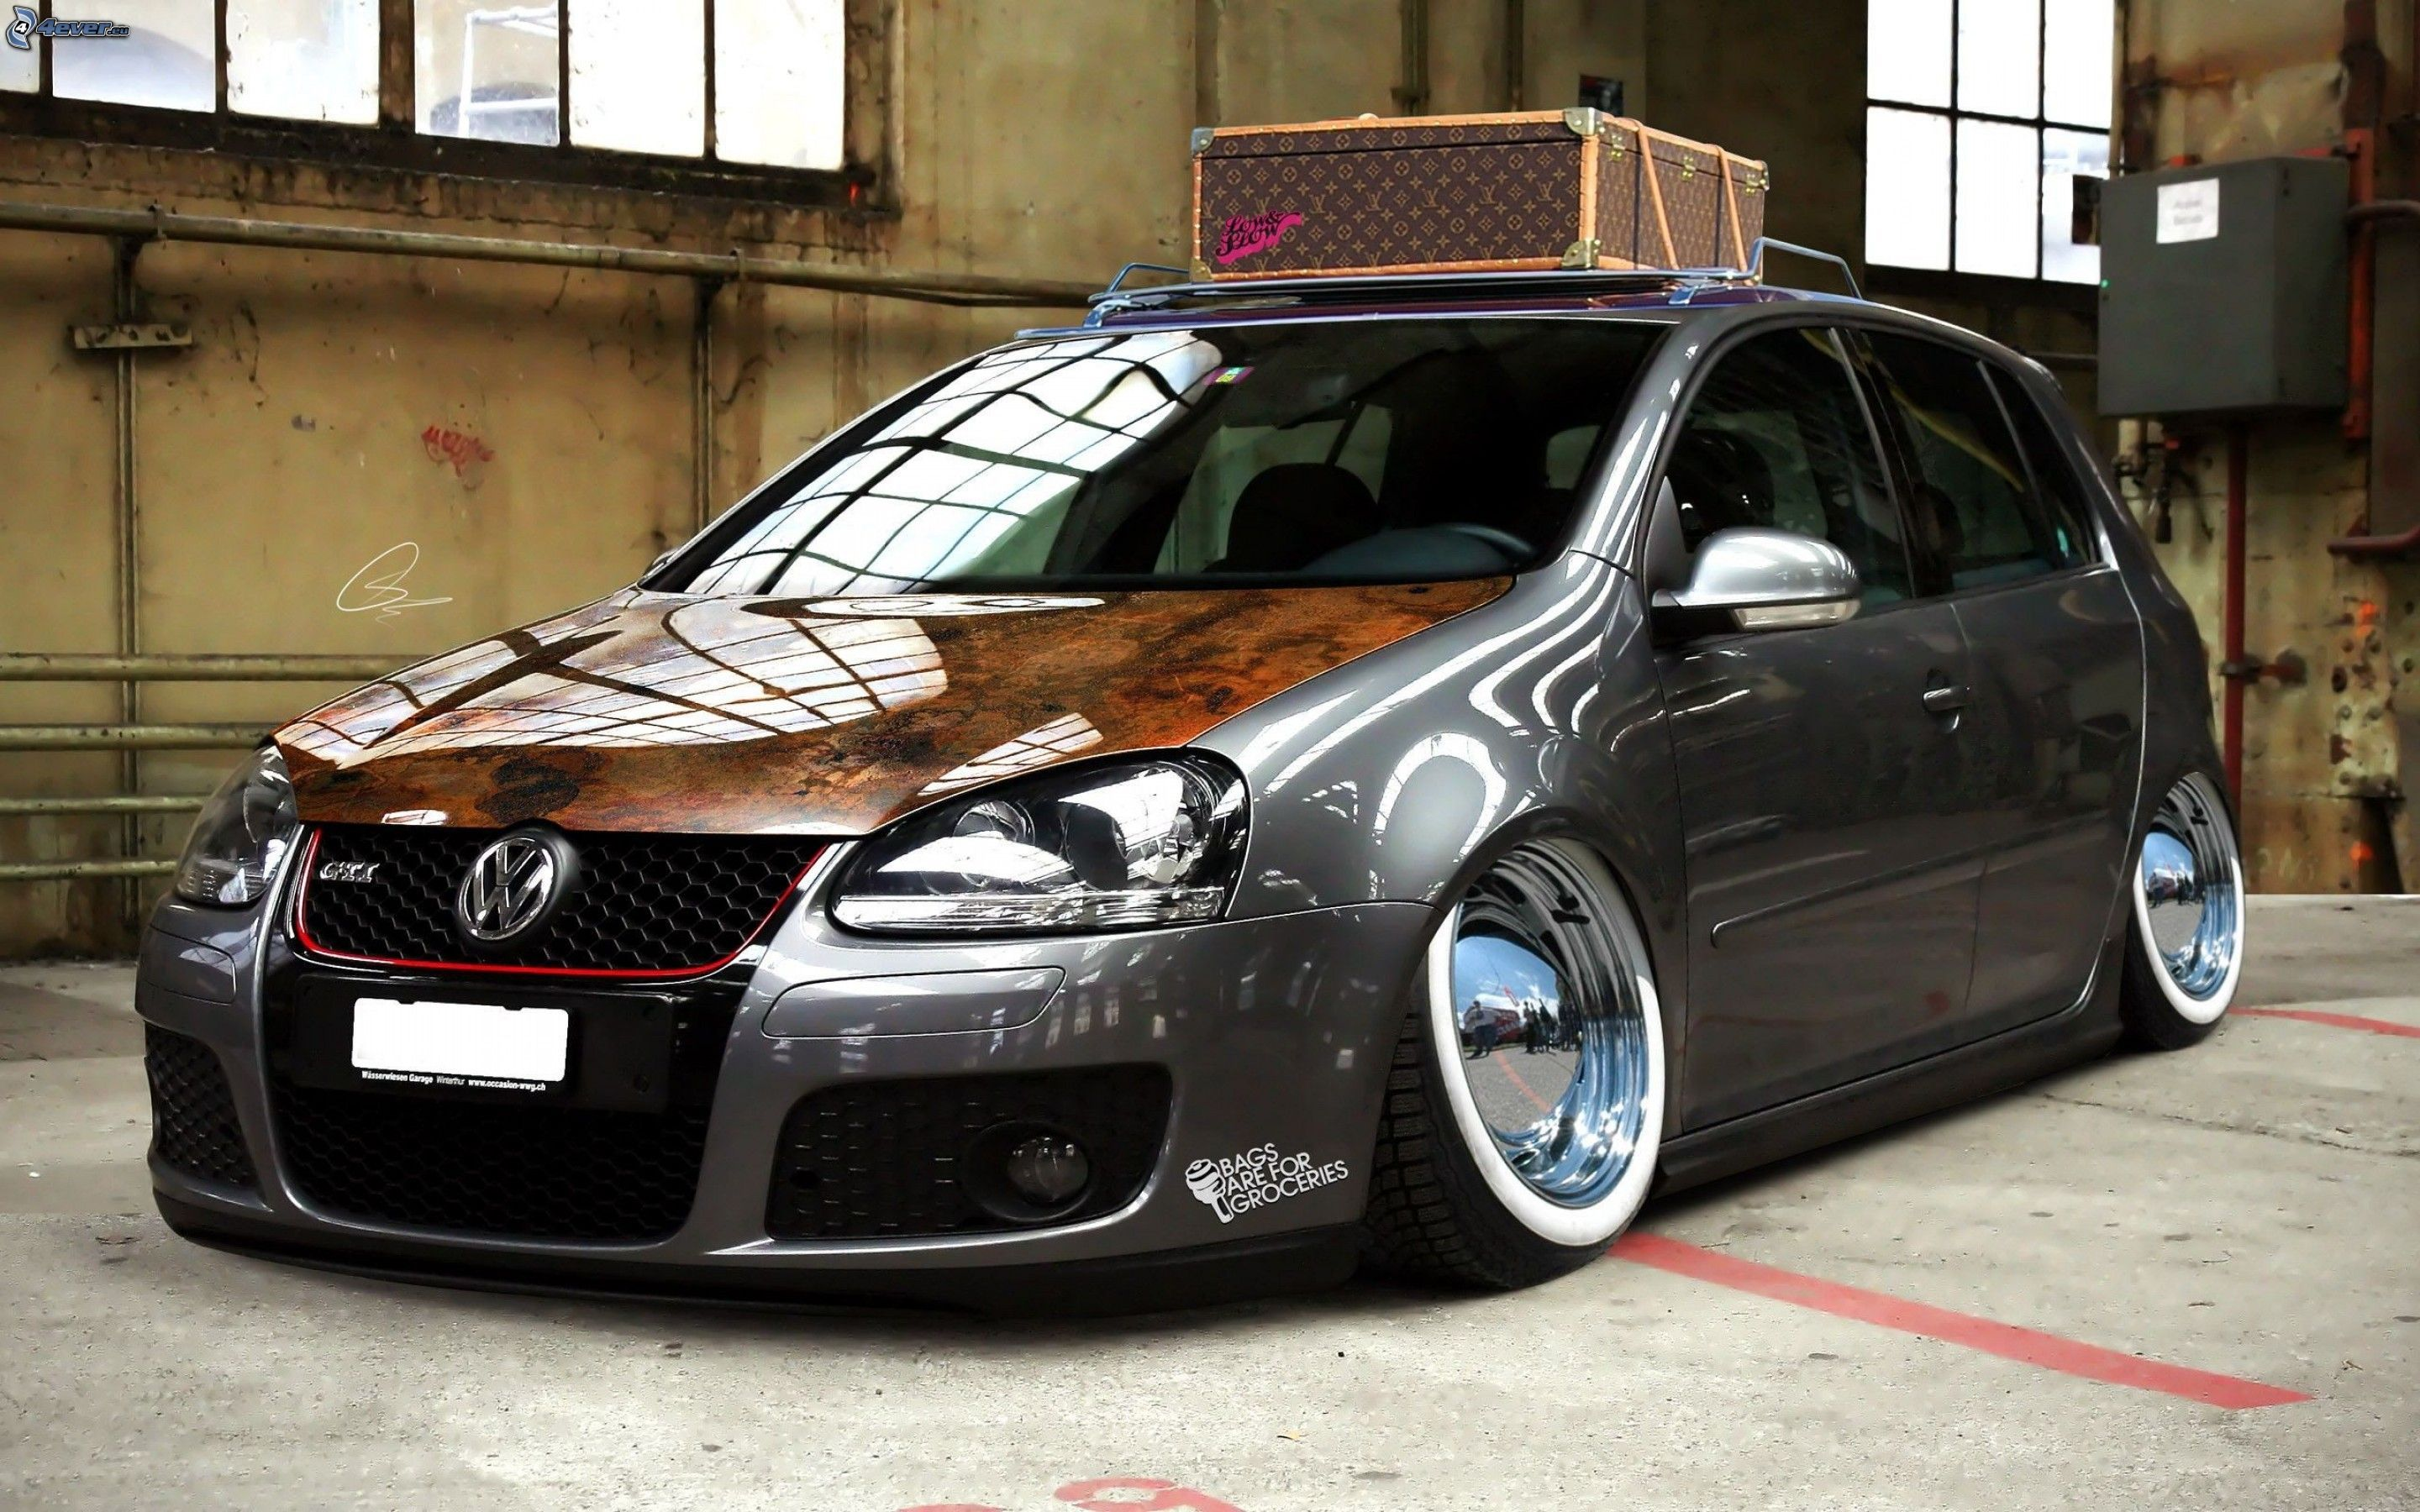 vw golf mk5 tuning special [ 2880 x 1800 Pixel ]